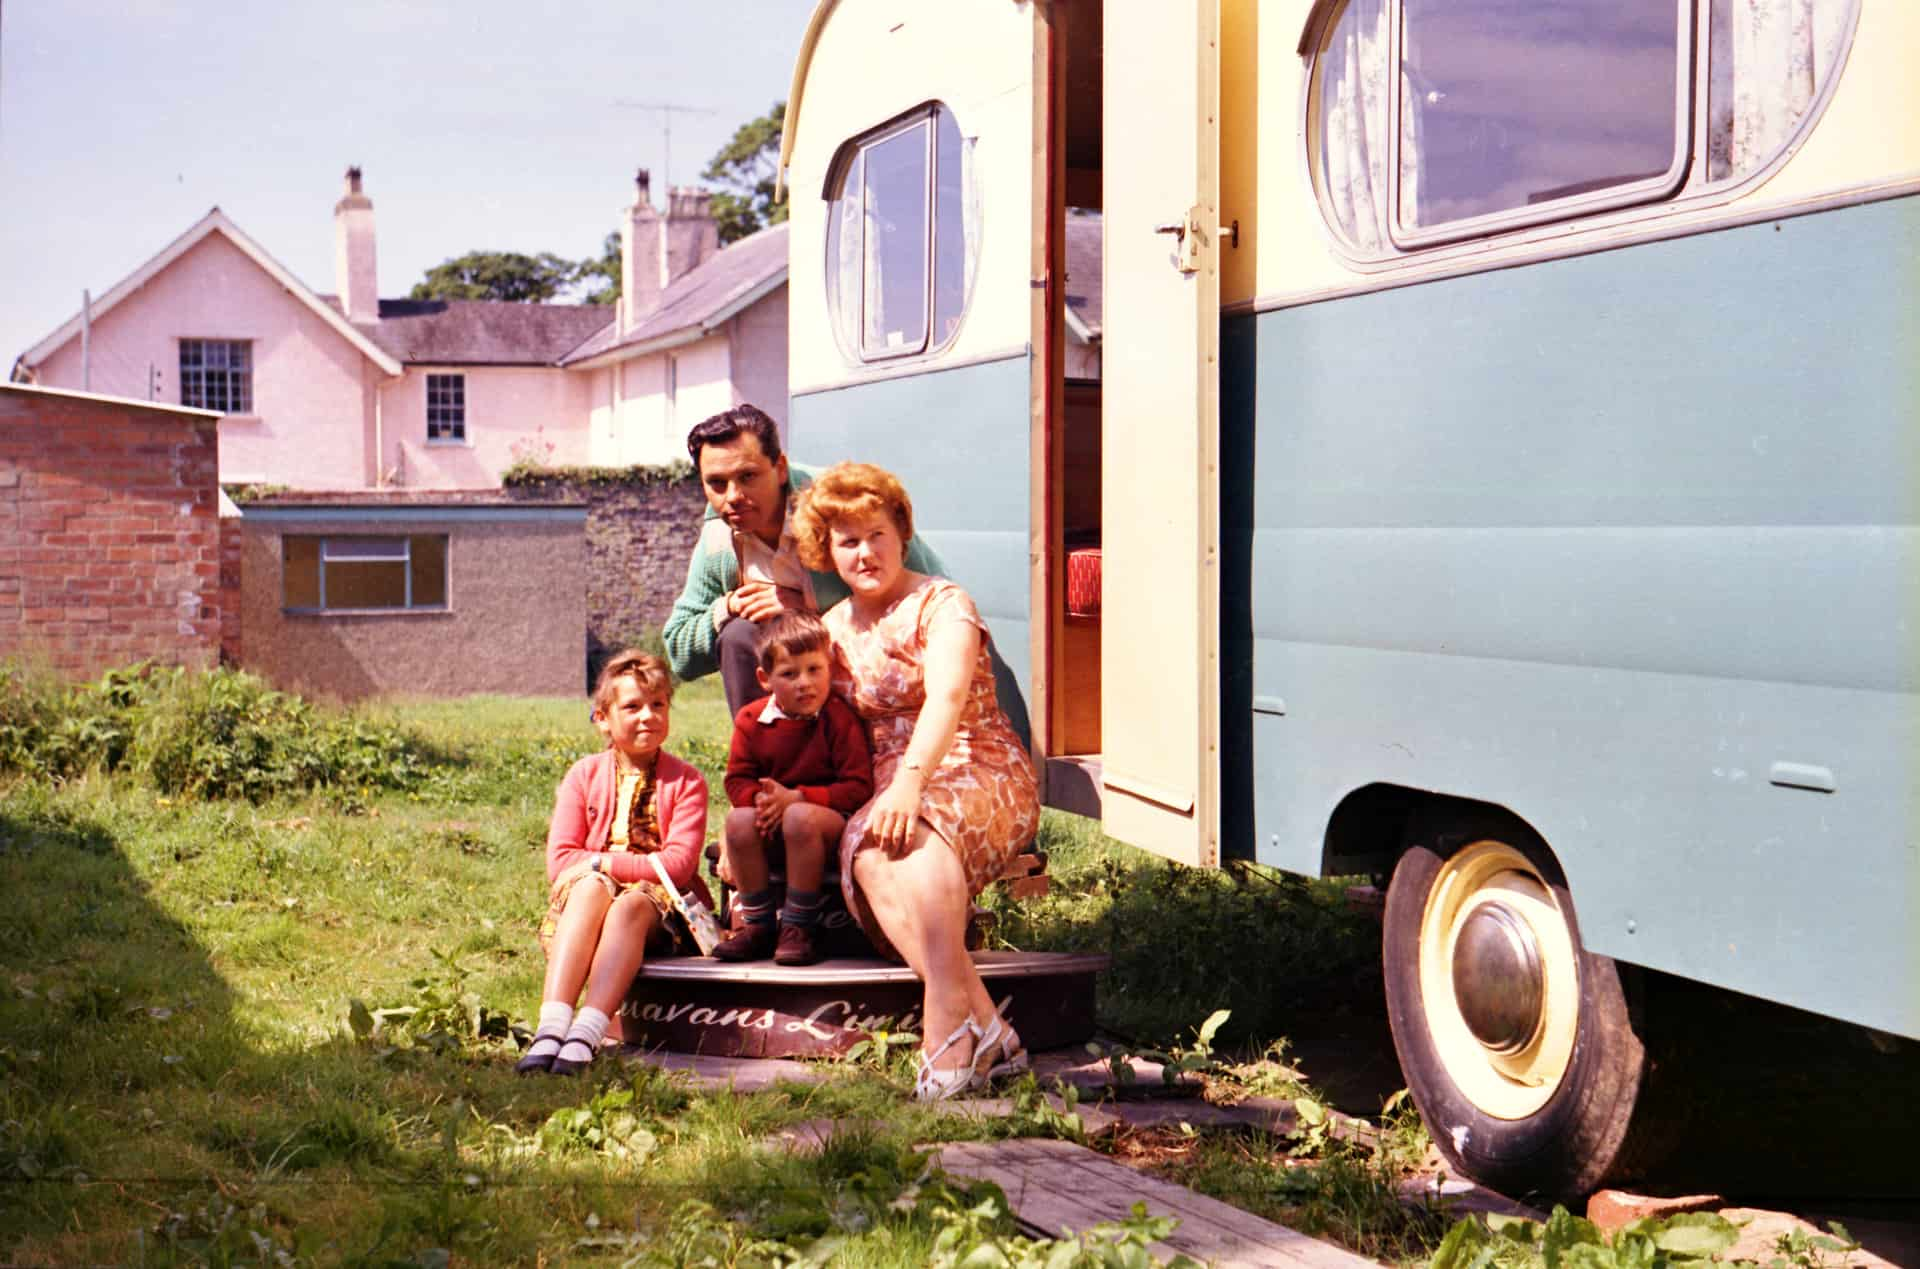 Ron Moss and Family self-portrait, 1962. Courtesy the Ron Moss Collection